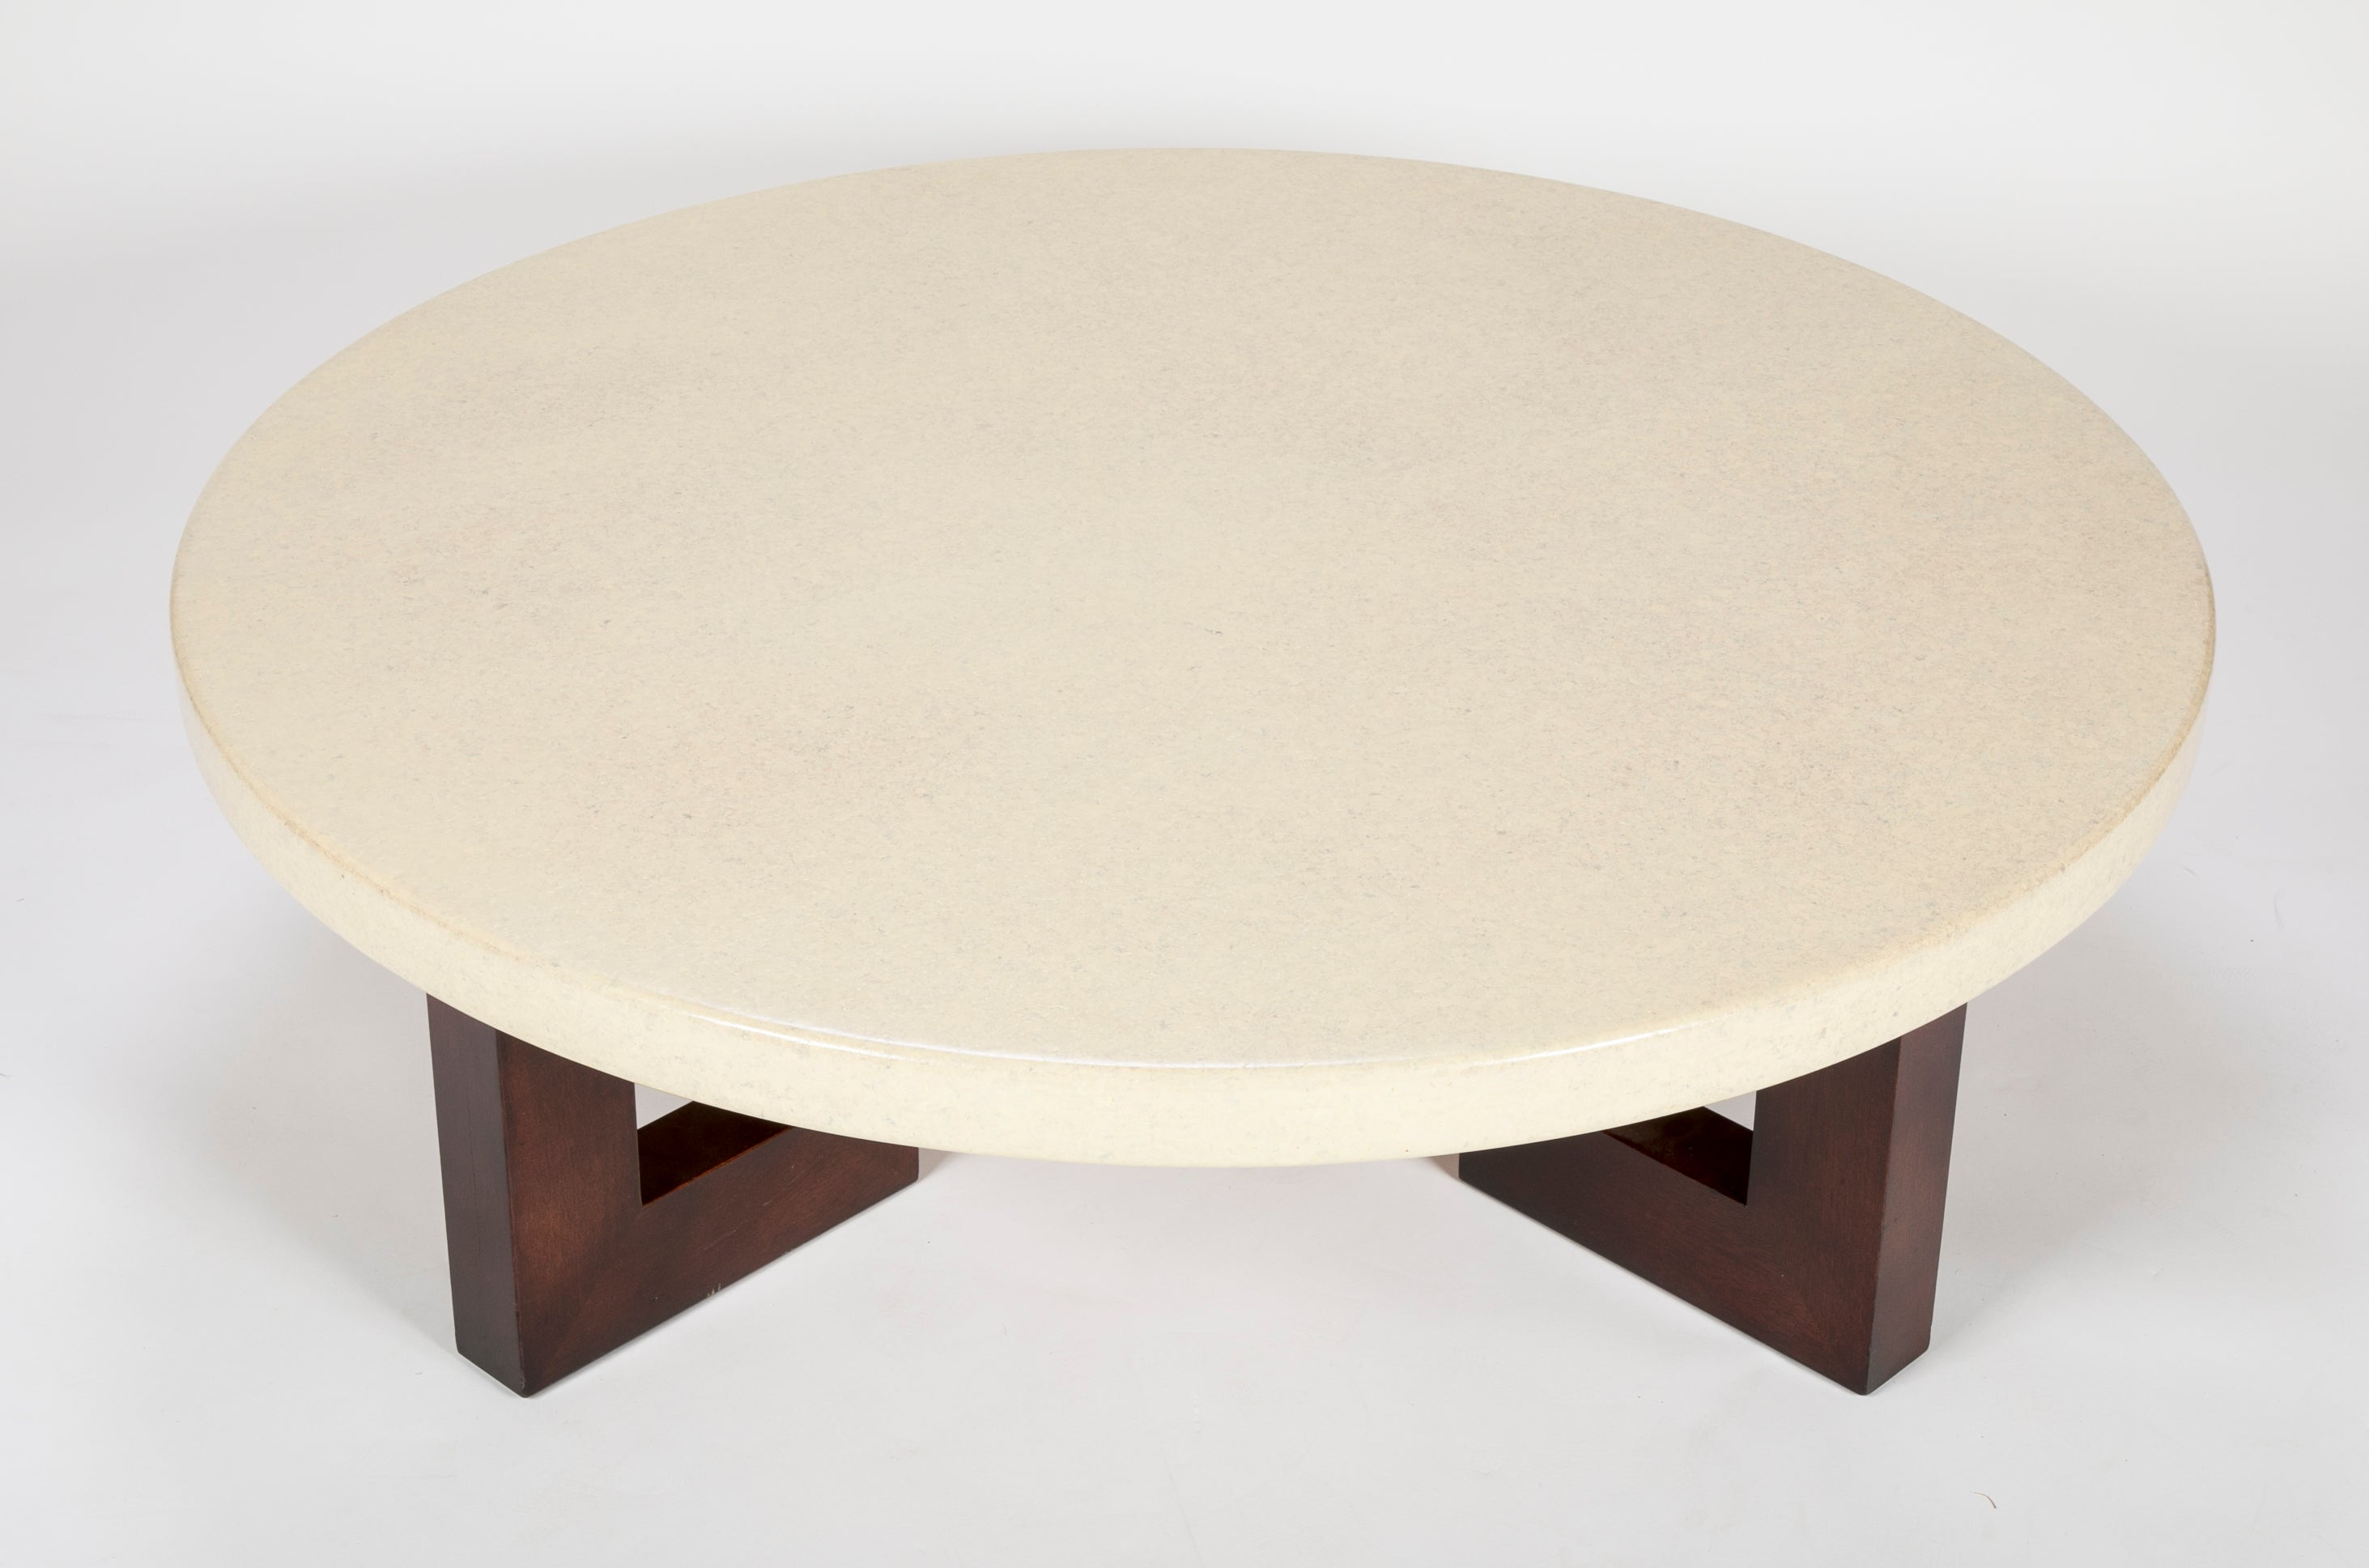 cork furniture. Circular Cork Coffee Table Designed By Paul Frankl For Johnson Furniture Co